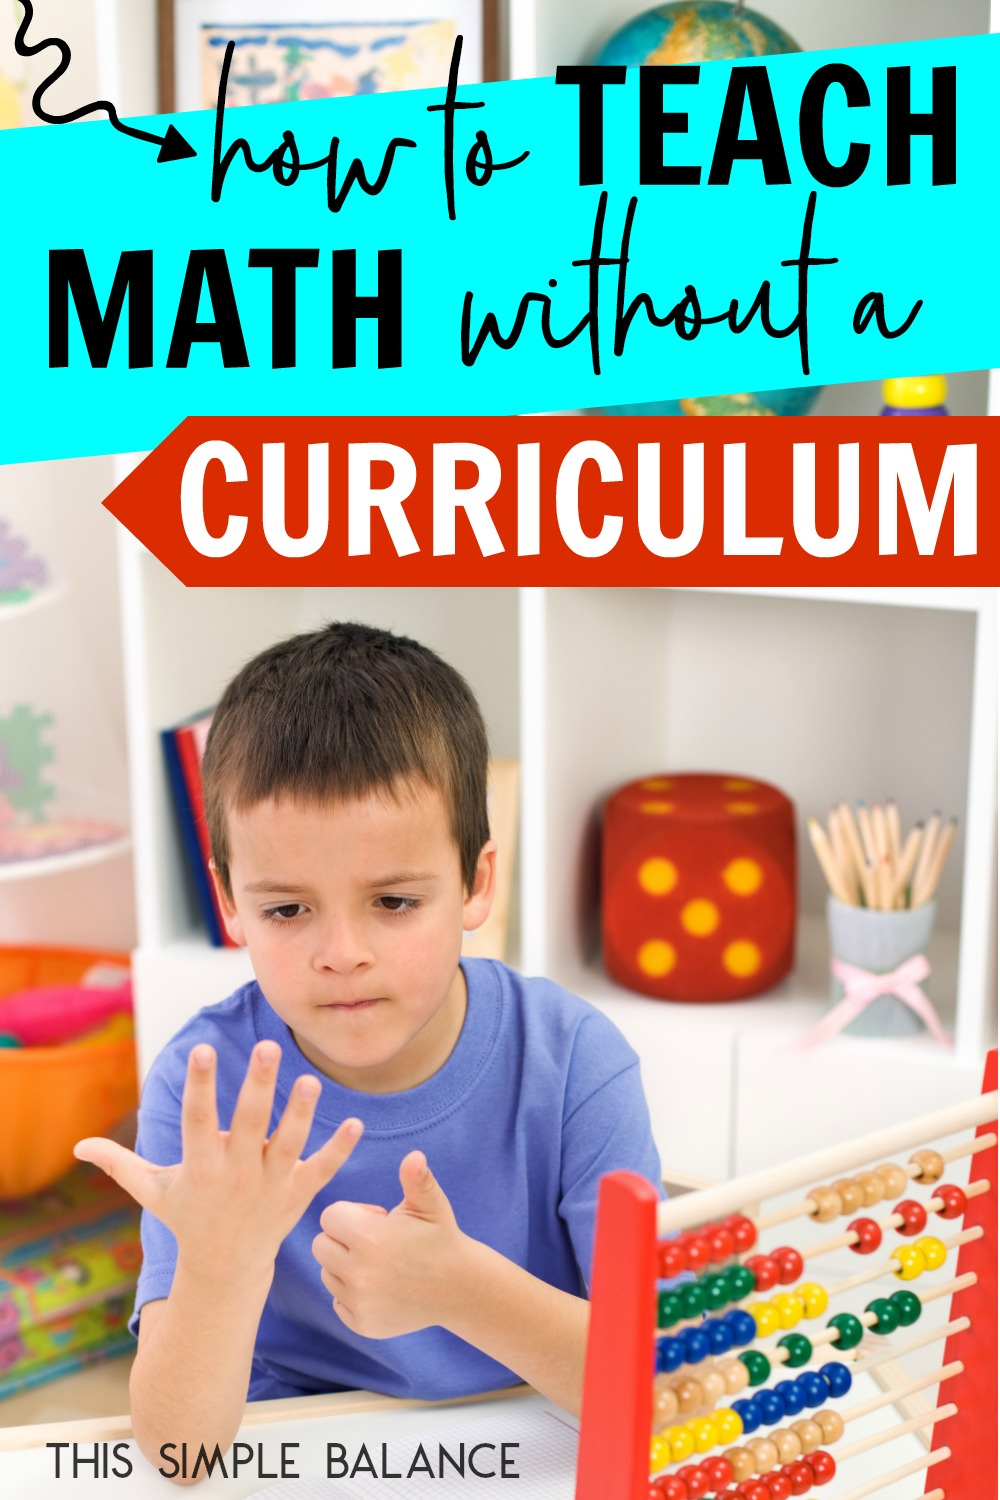 You CAN teach math without curriculum. Here are 11 ideas and reasons why math seems like the most difficult homeschool subject of all time (but it doesn't need to be).